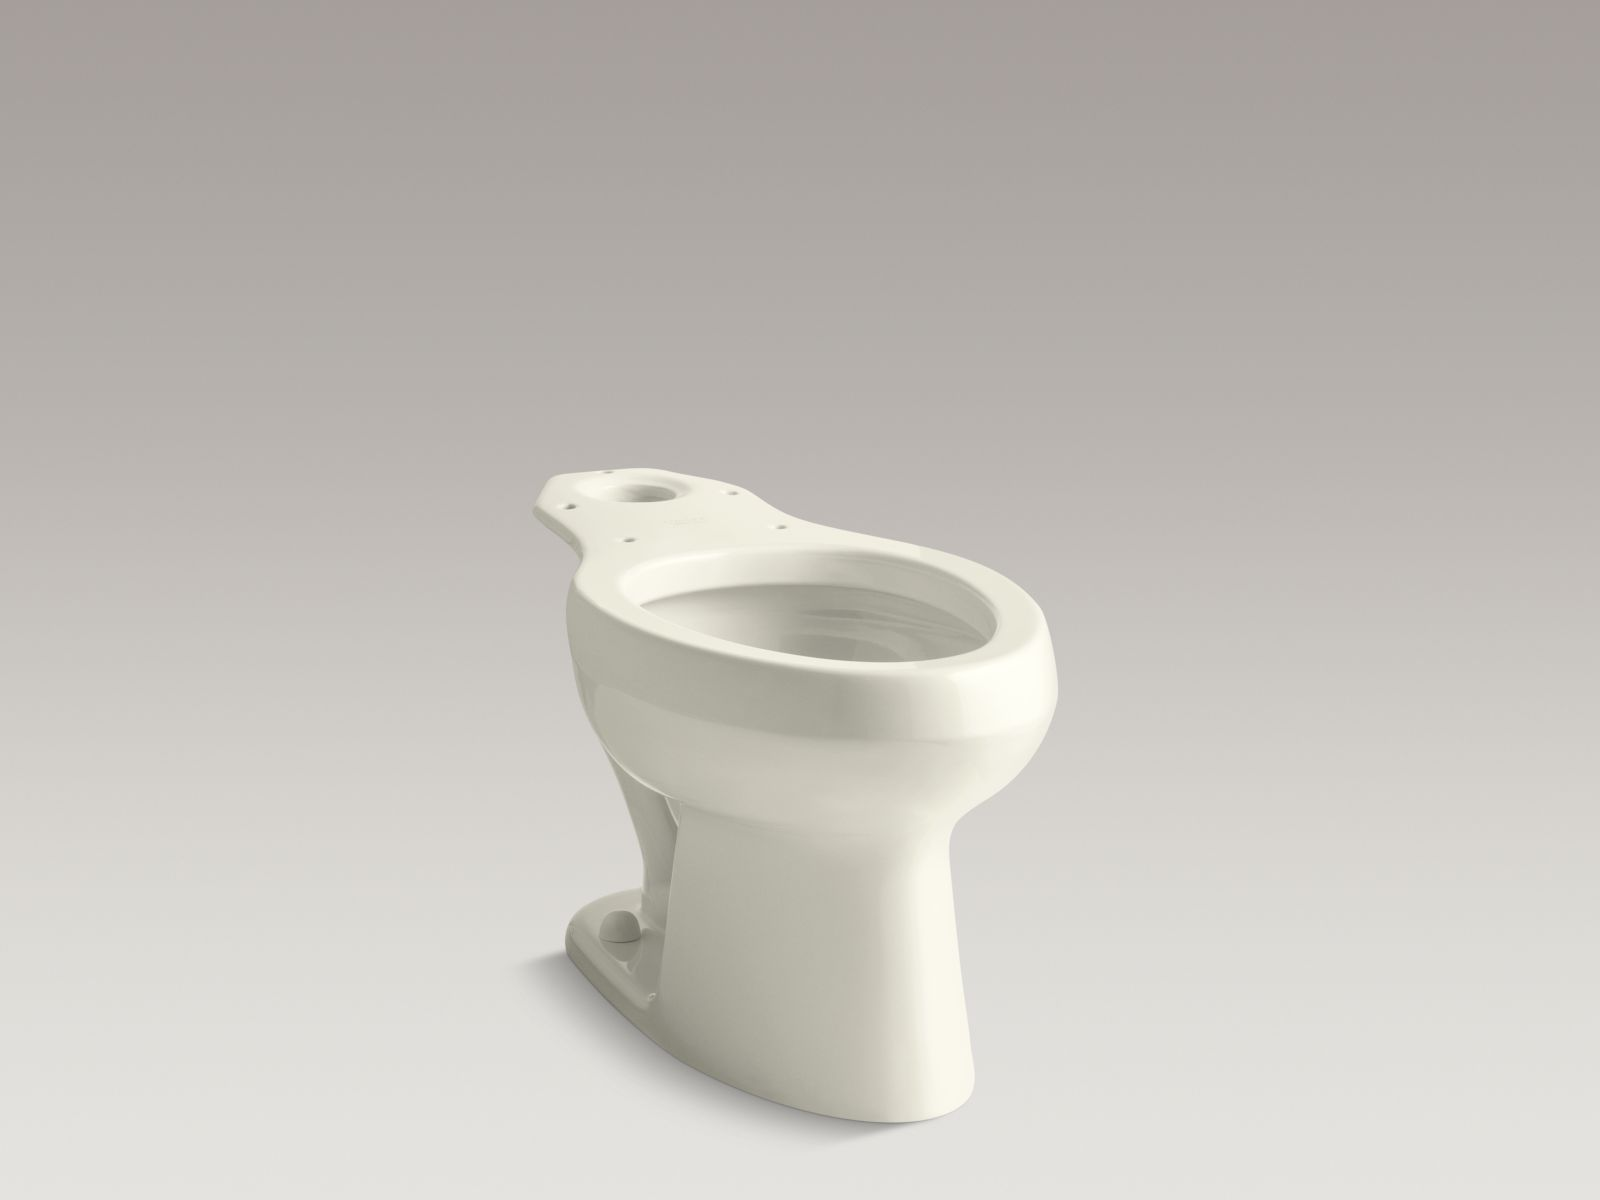 Kohler K-4303-96 Wellworth Elongated Toilet Bowl with Pressure Lite Technology Biscuit